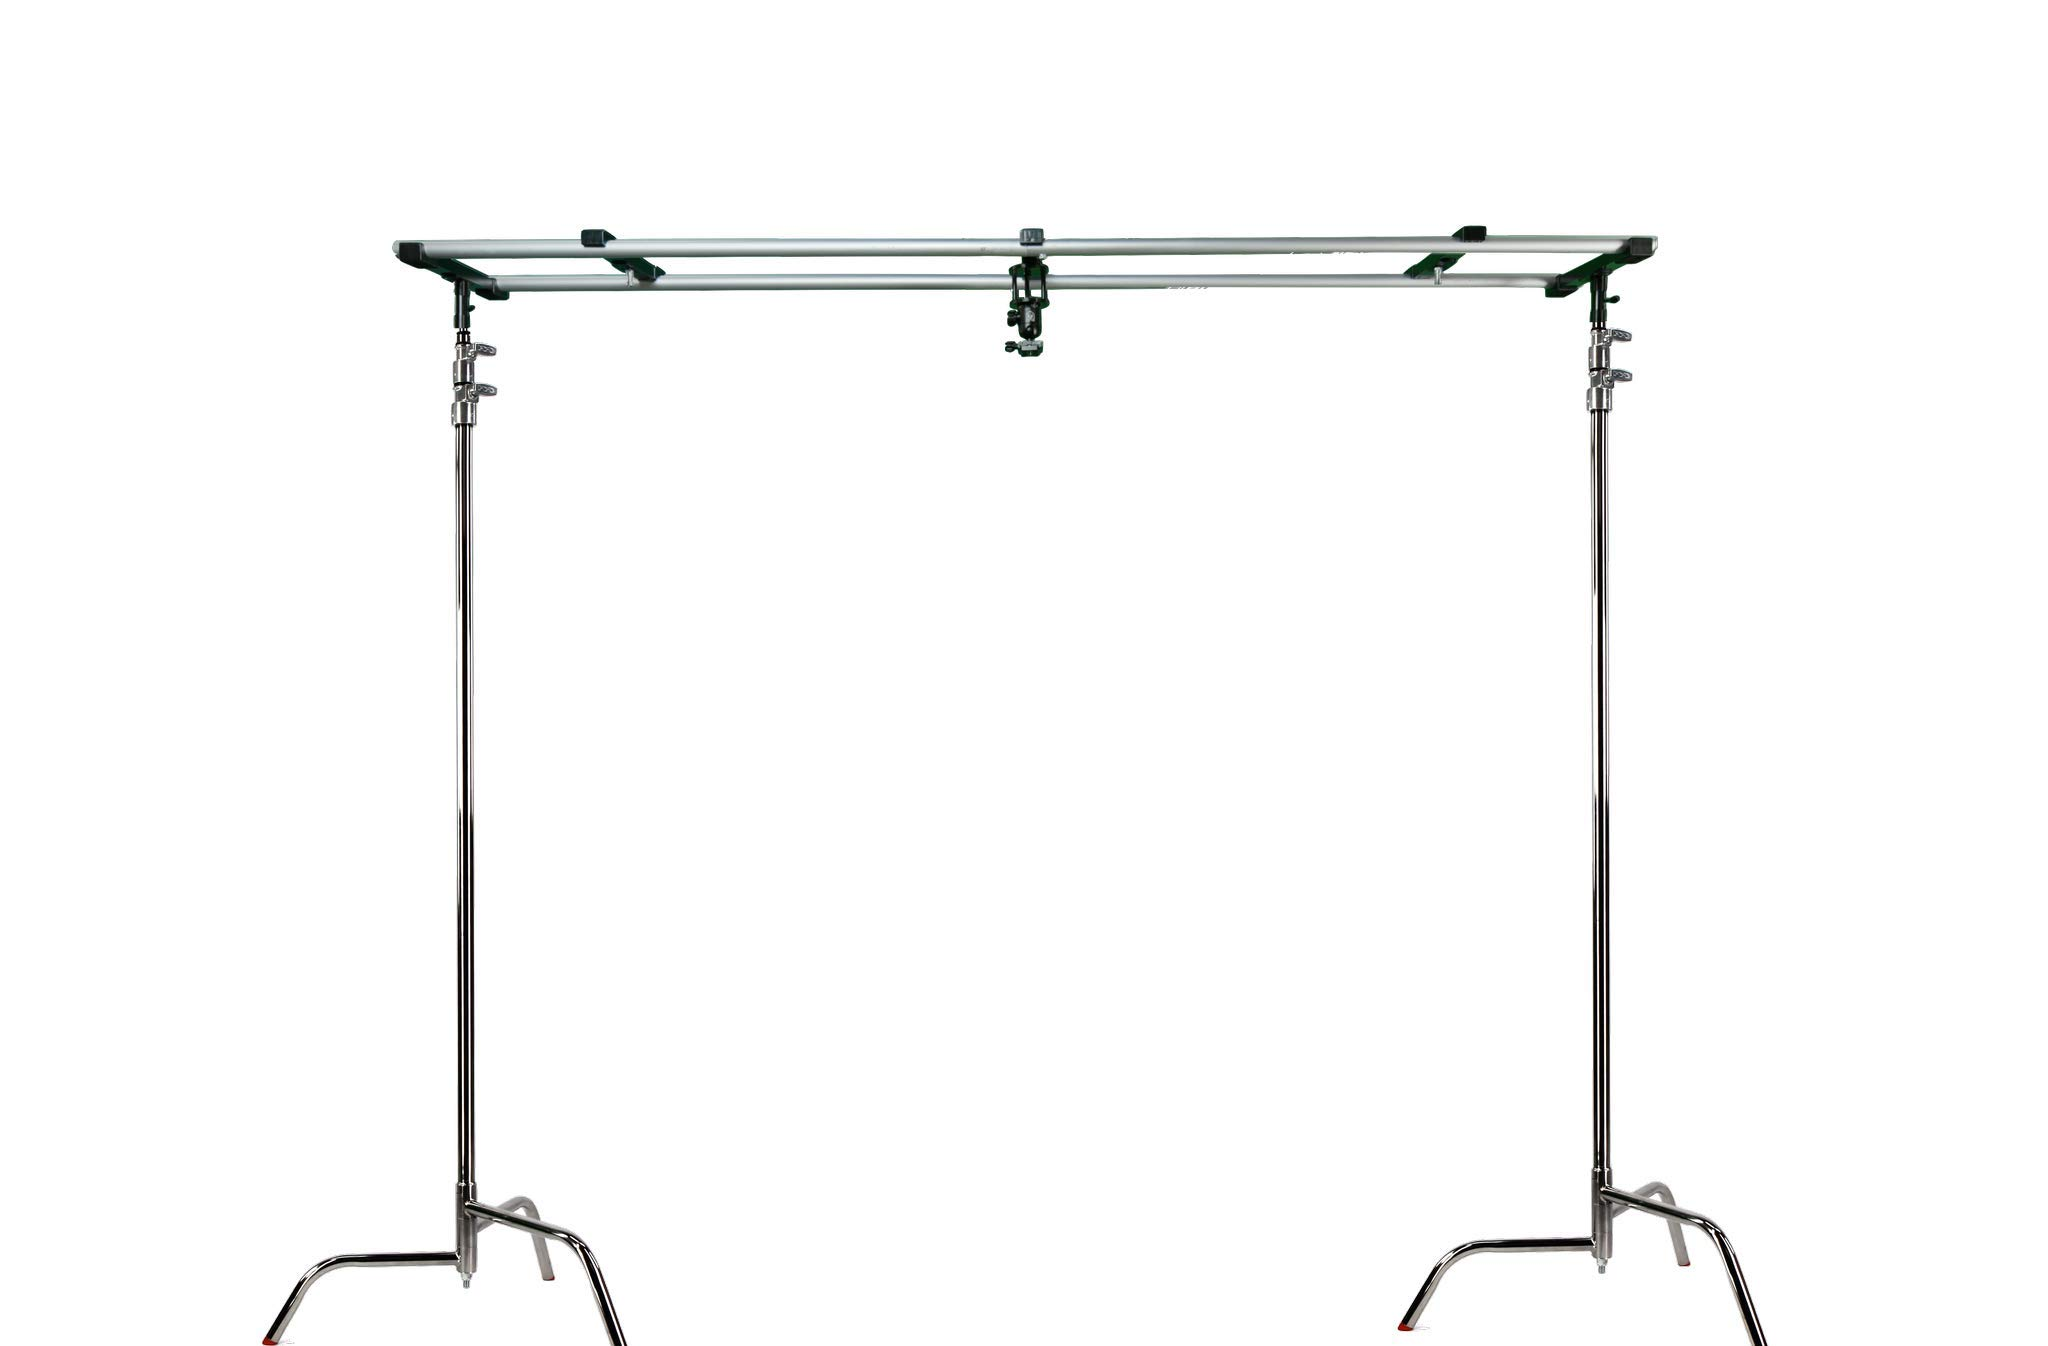 Glide Gear OH 150 Overhead Camera Light Platform Rig Stand 4-12ft Wide Modular System